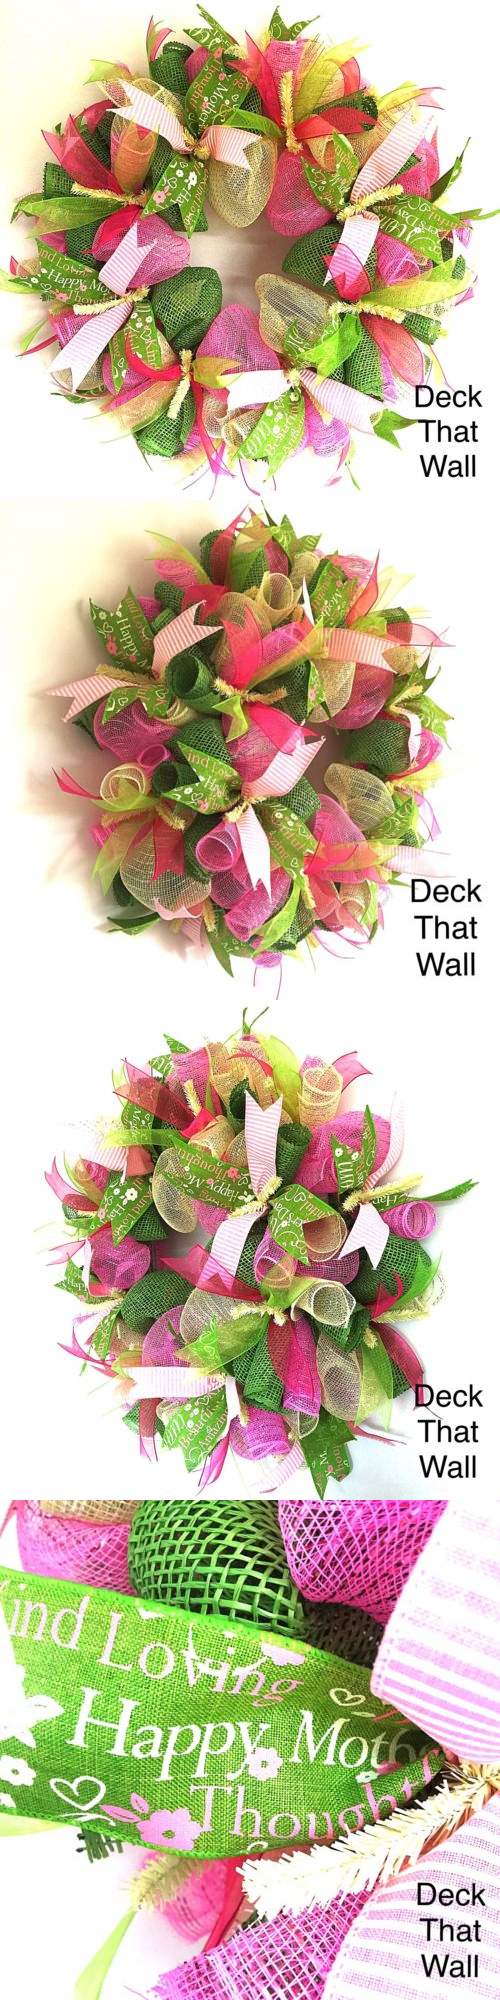 Wreaths 16498: Mother S Day Pink And Green Mesh Wreath, Deck That Wall -> BUY IT NOW ONLY: $50 on eBay!